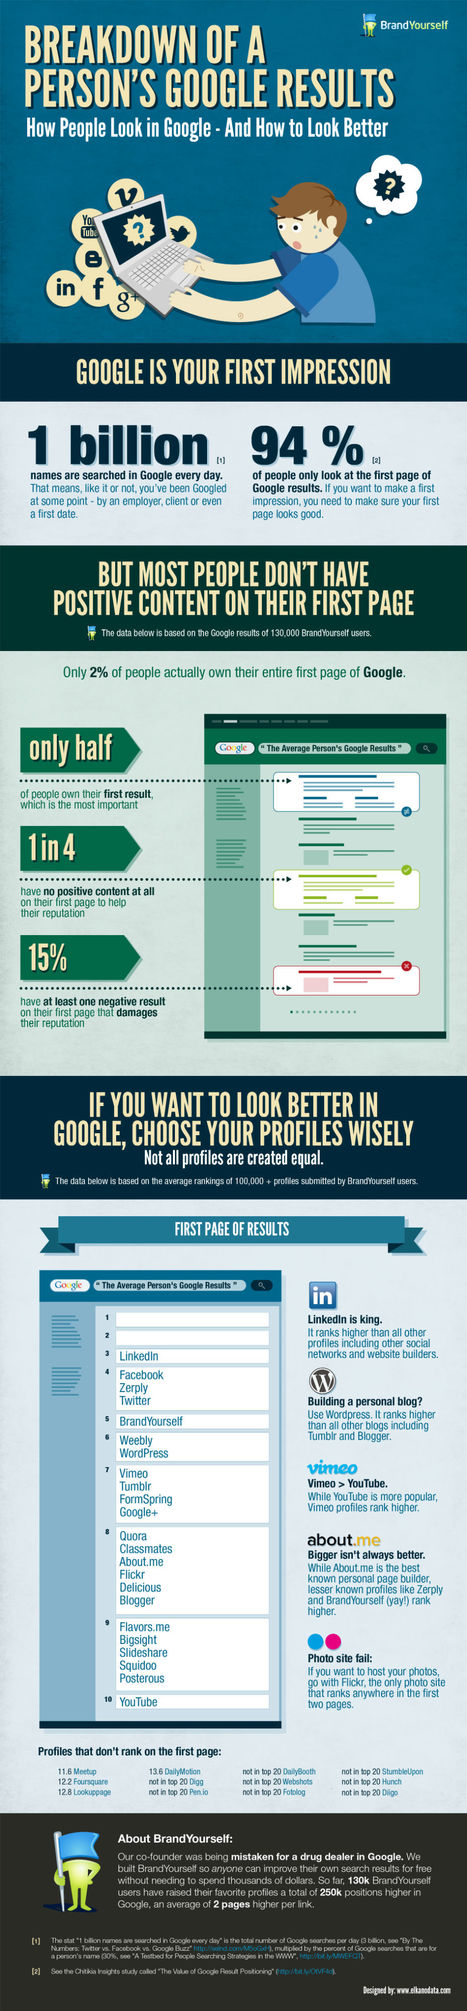 Here's How to Appear Higher on Google Search Results [INFOGRAPHIC] | Social Media Tweets | Scoop.it